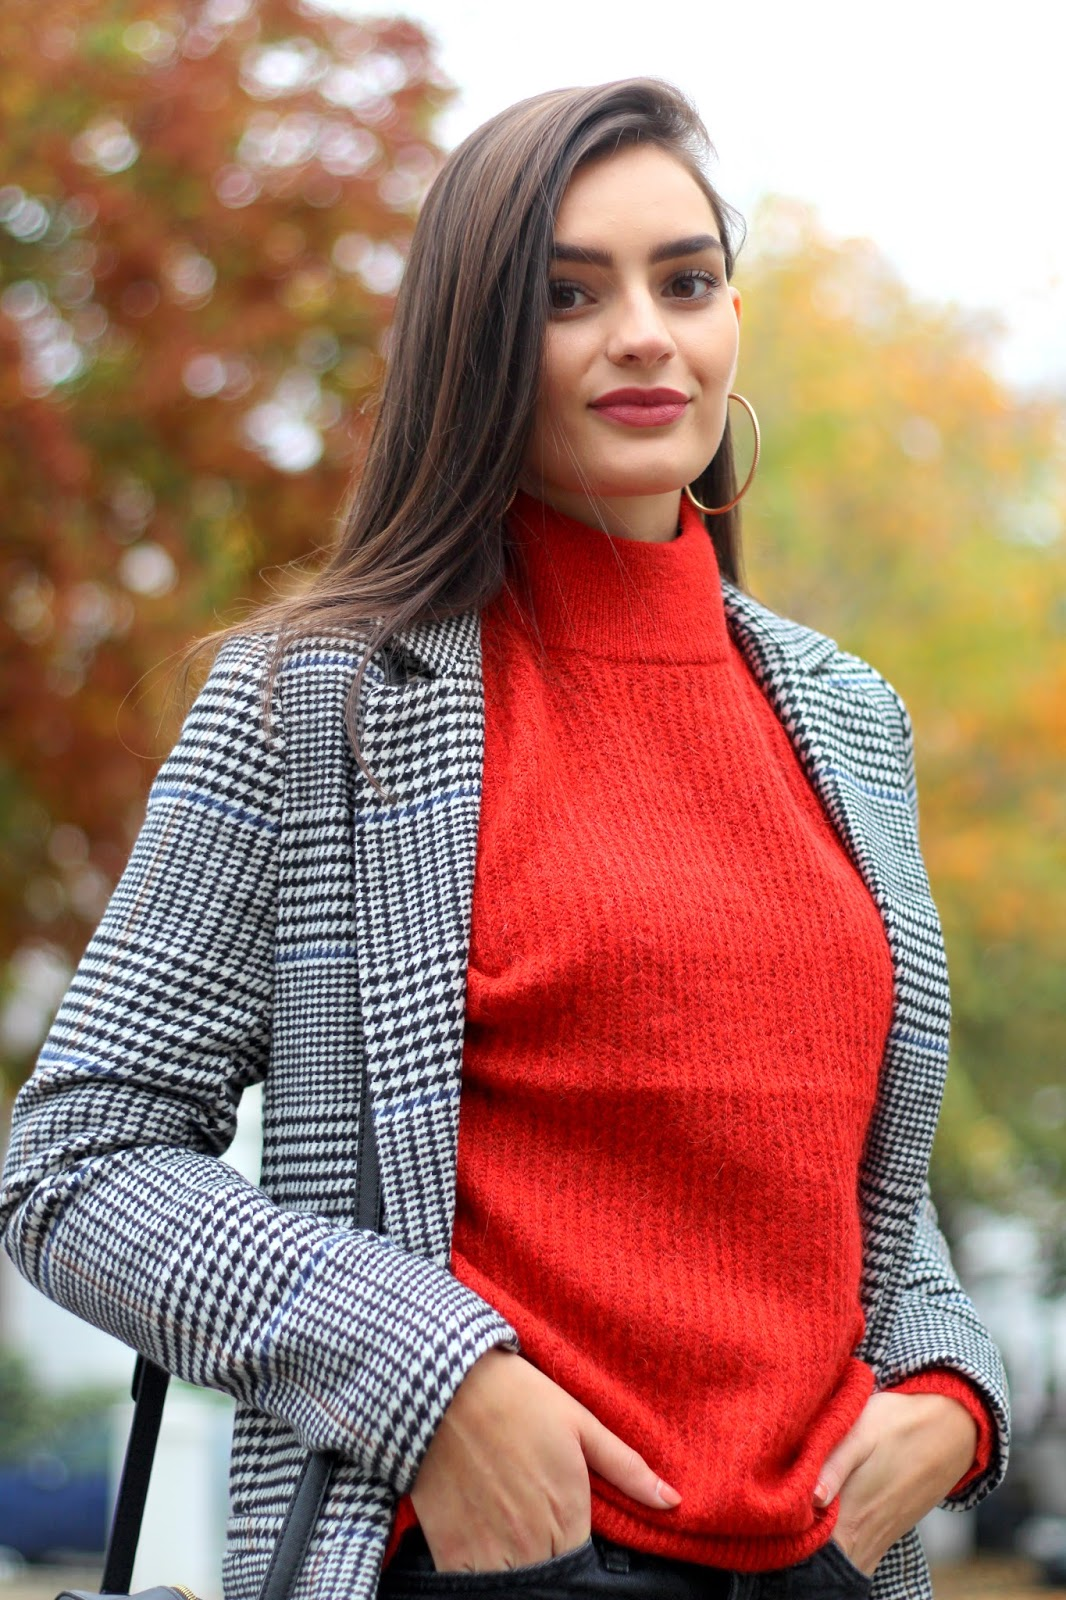 fashion blogger peexo autumn coat weather